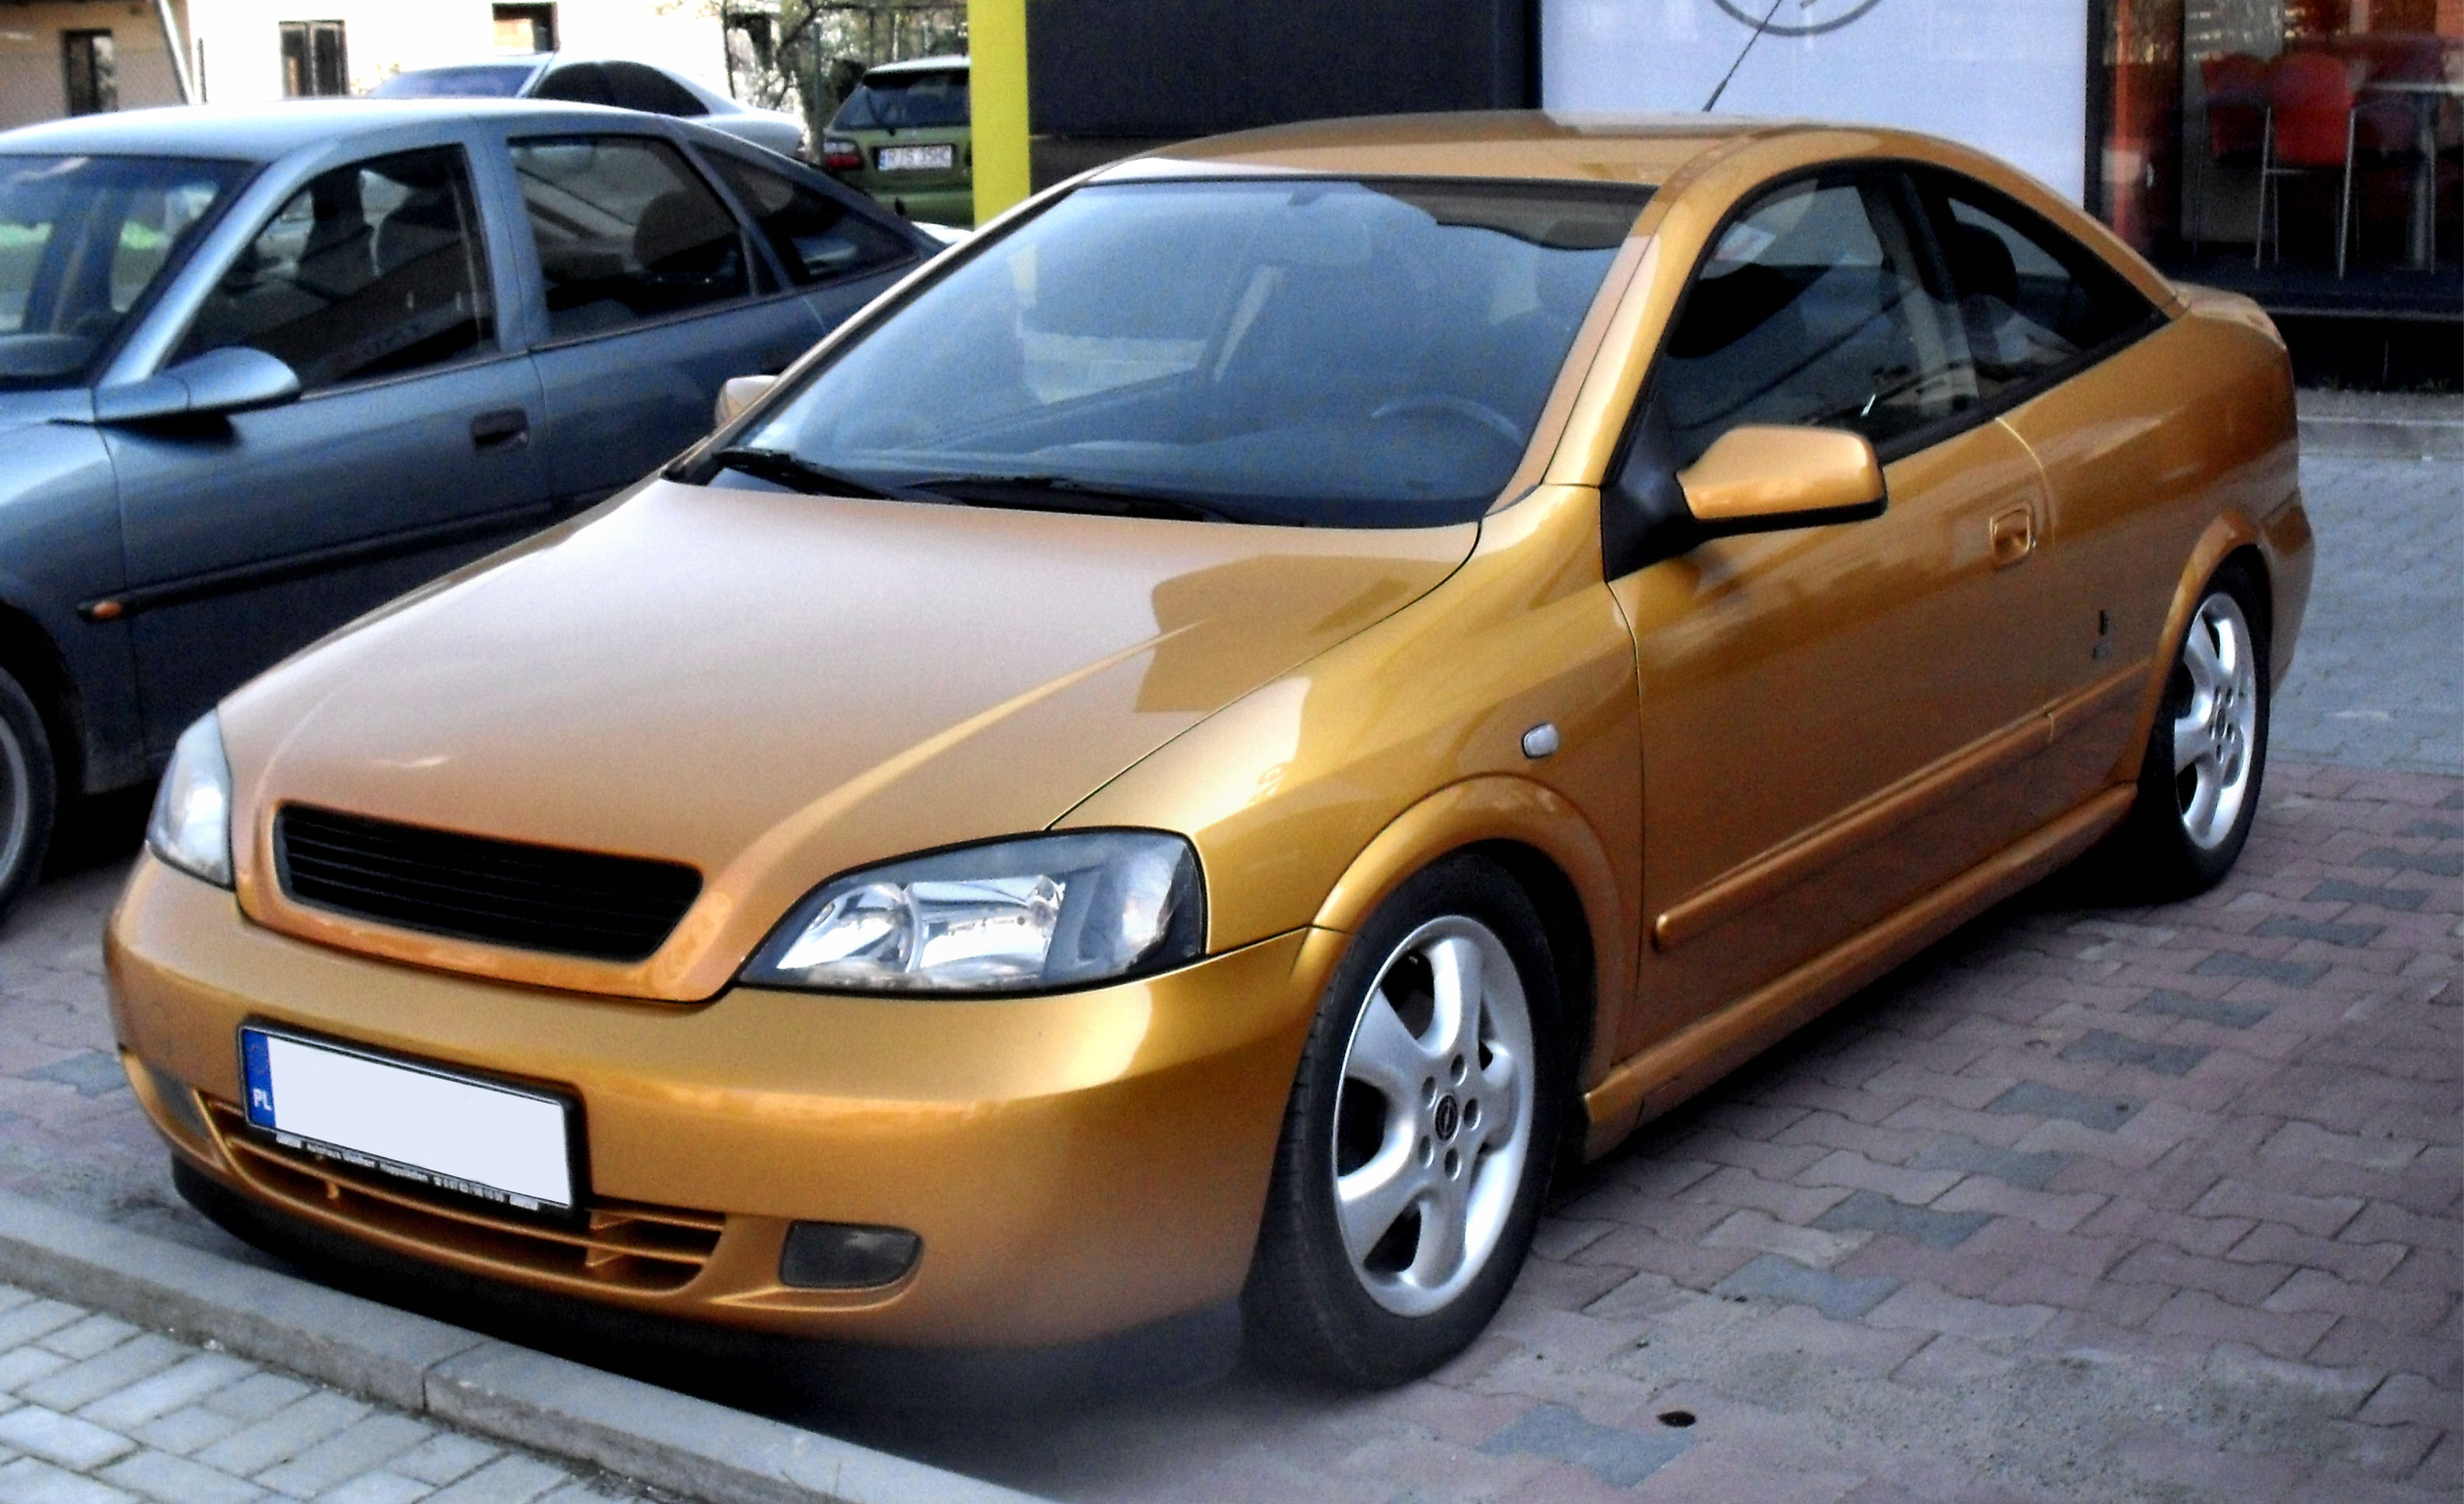 2003 opel astra g coupe pictures information and specs. Black Bedroom Furniture Sets. Home Design Ideas